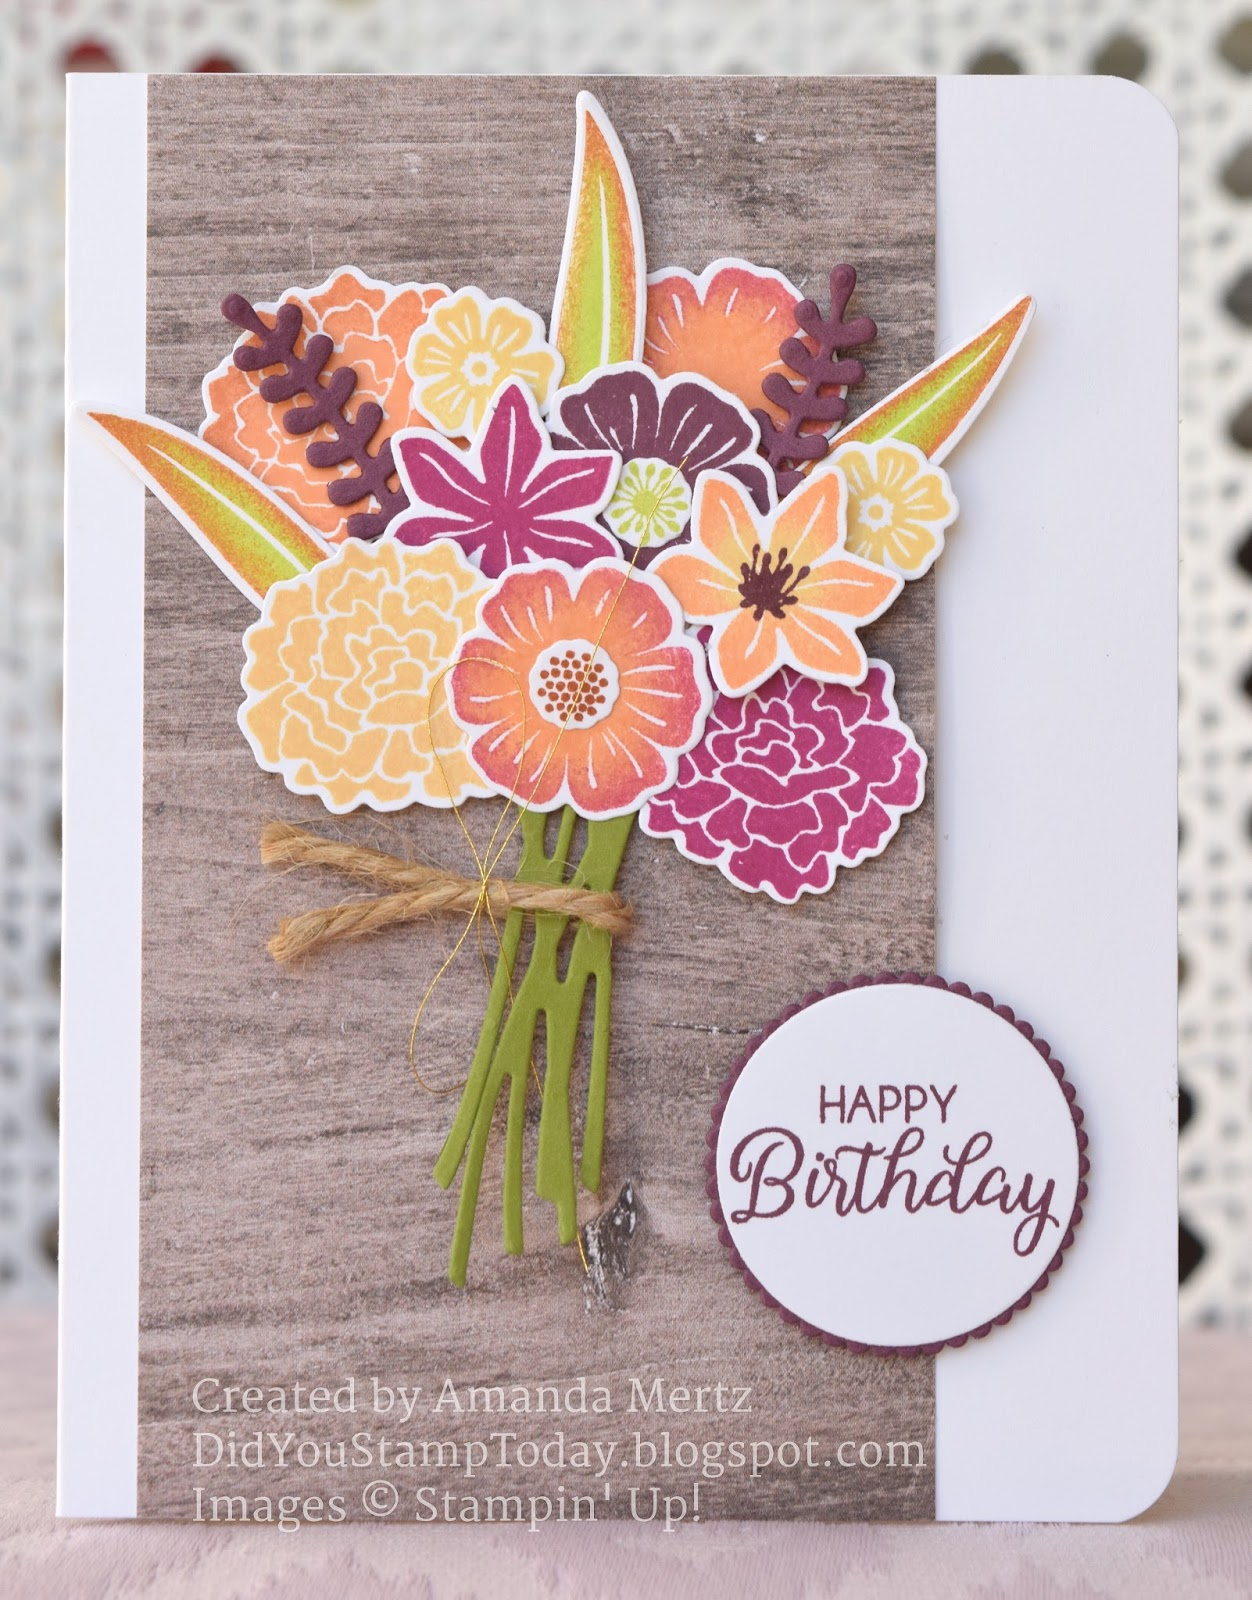 Did you stamp today fall birthday bouquet stampin up beautiful flowers in rich autumn colors which i tried to recreate with the beautiful bouquet bundle i did some select sponging on a few of the flowers and leaves izmirmasajfo